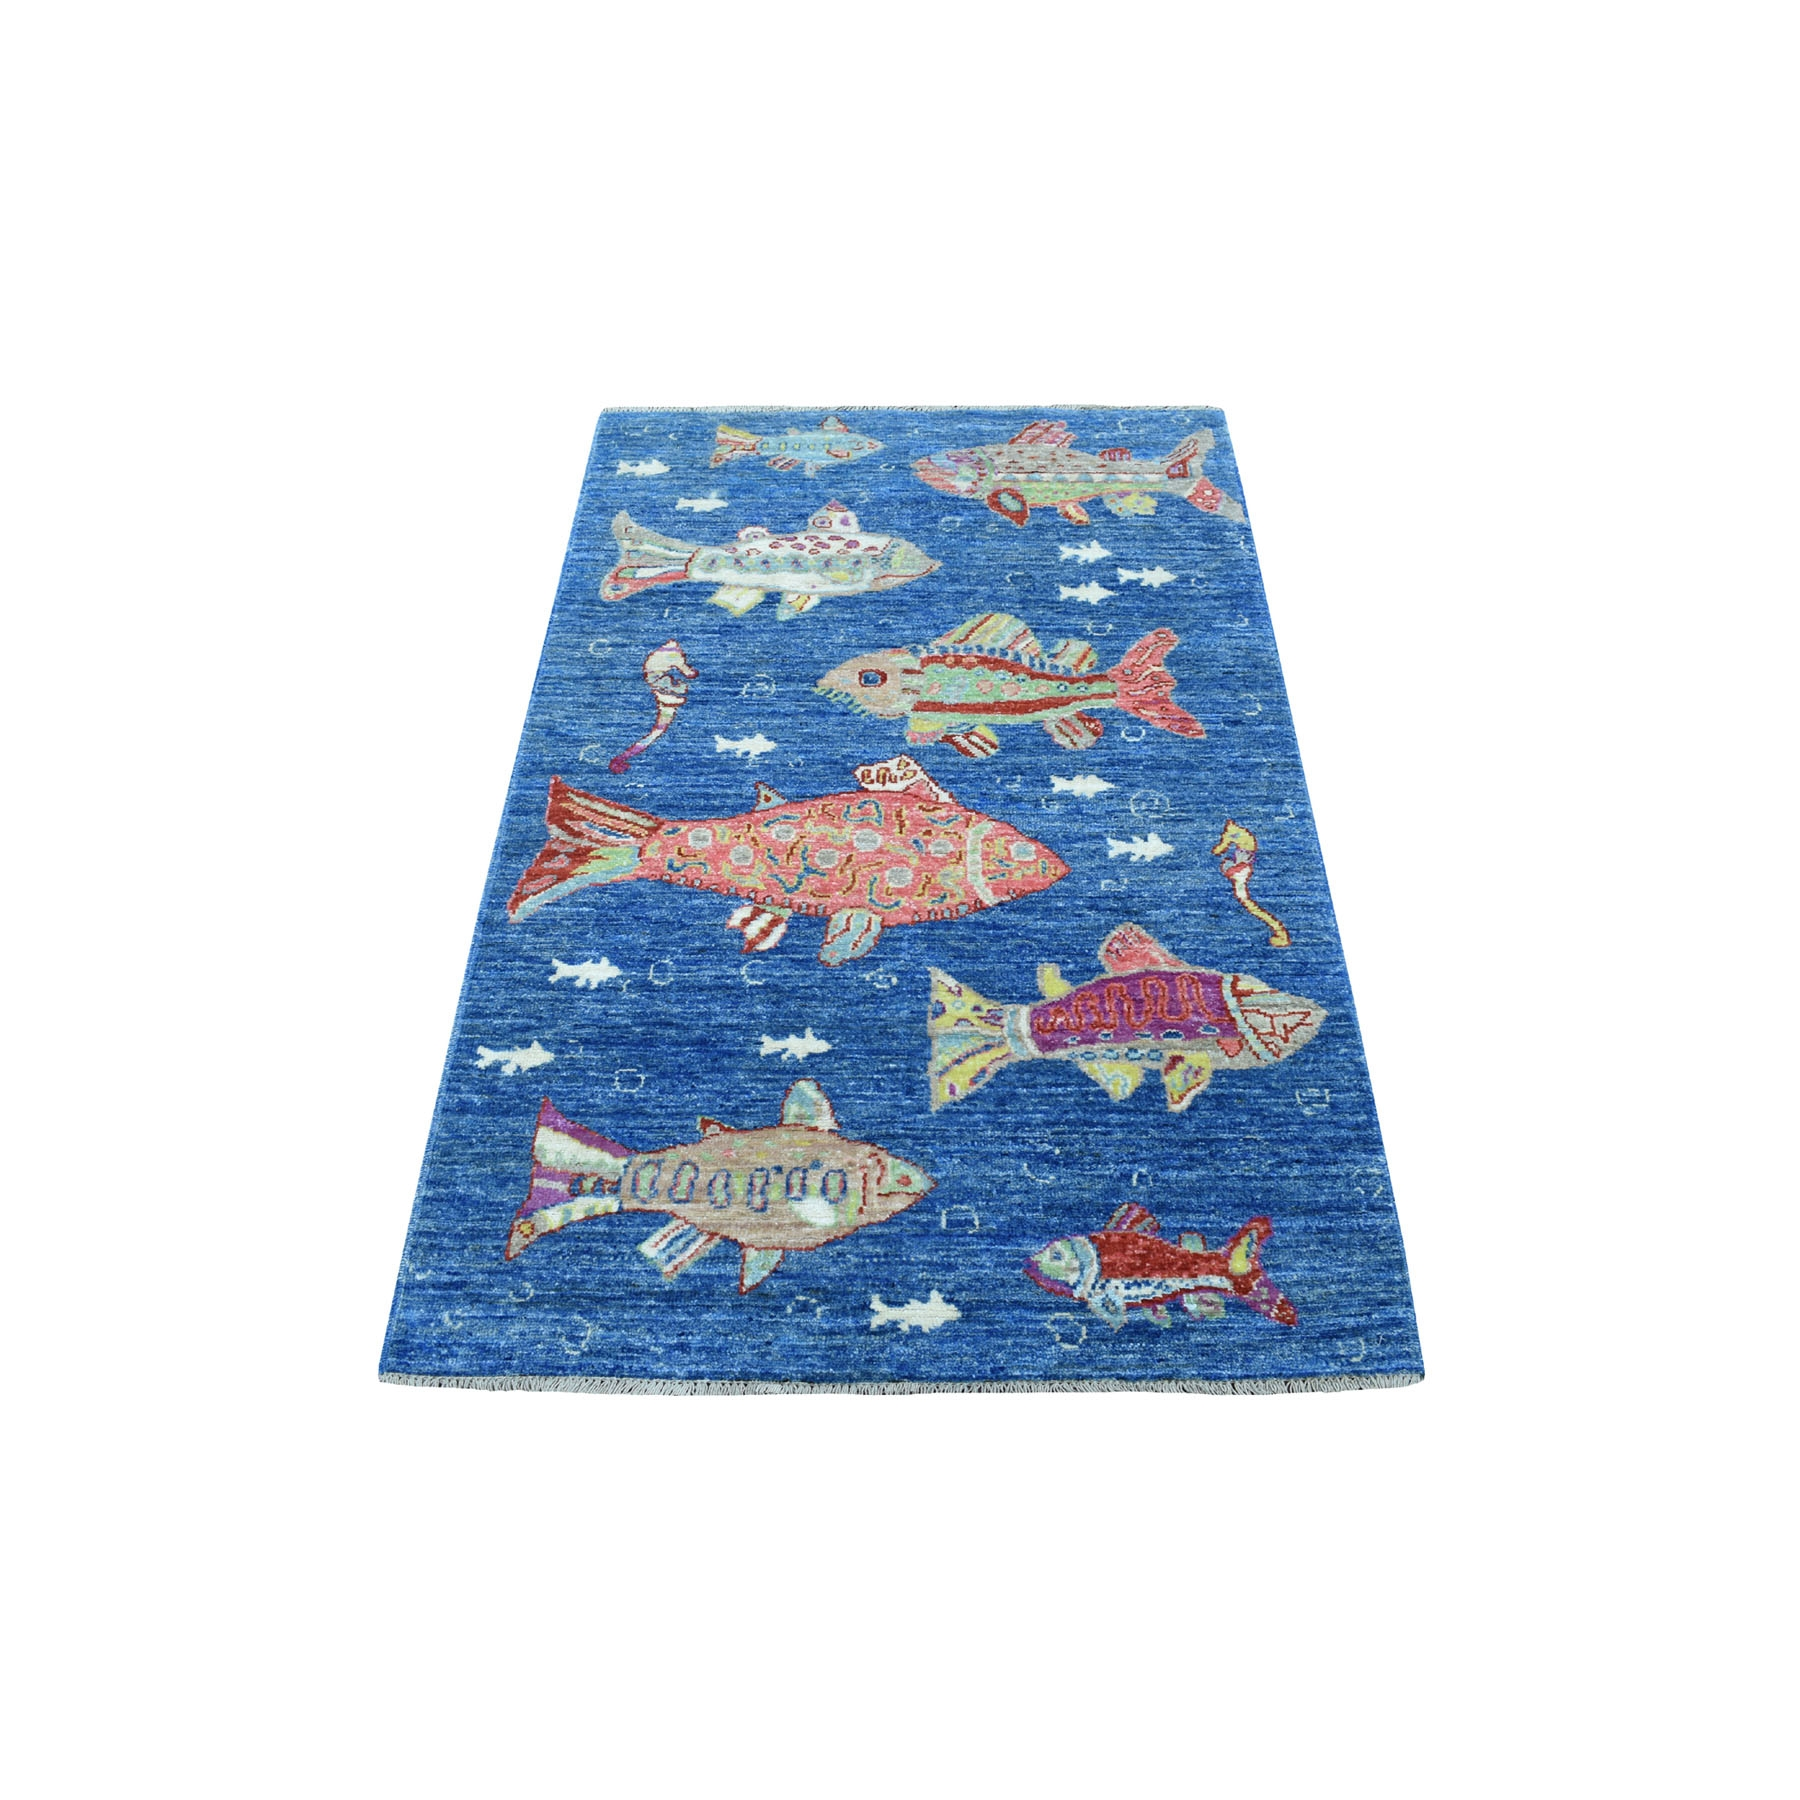 3'x5' Pure Wool Oceanic Fish Design Afghan Peshawar Hand Knotted Oriental Rug